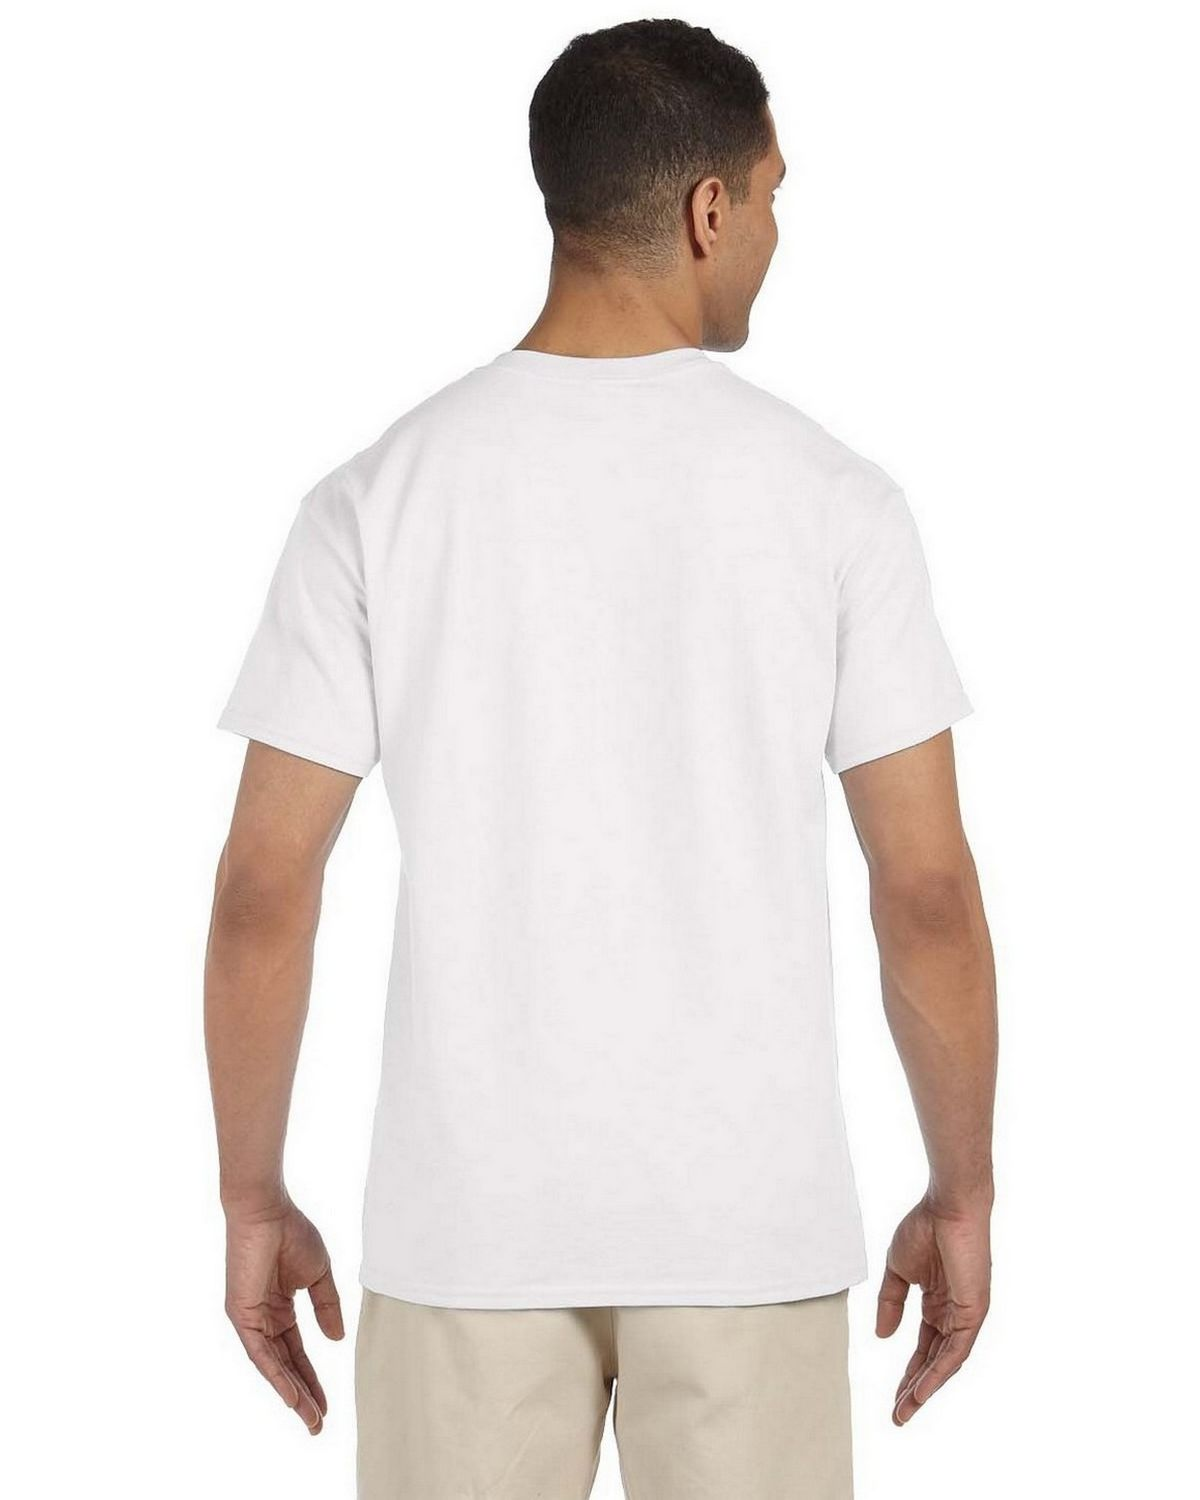 Gildan g230 ultra cotton pocket t shirt size chart for Gildan brand t shirt size chart